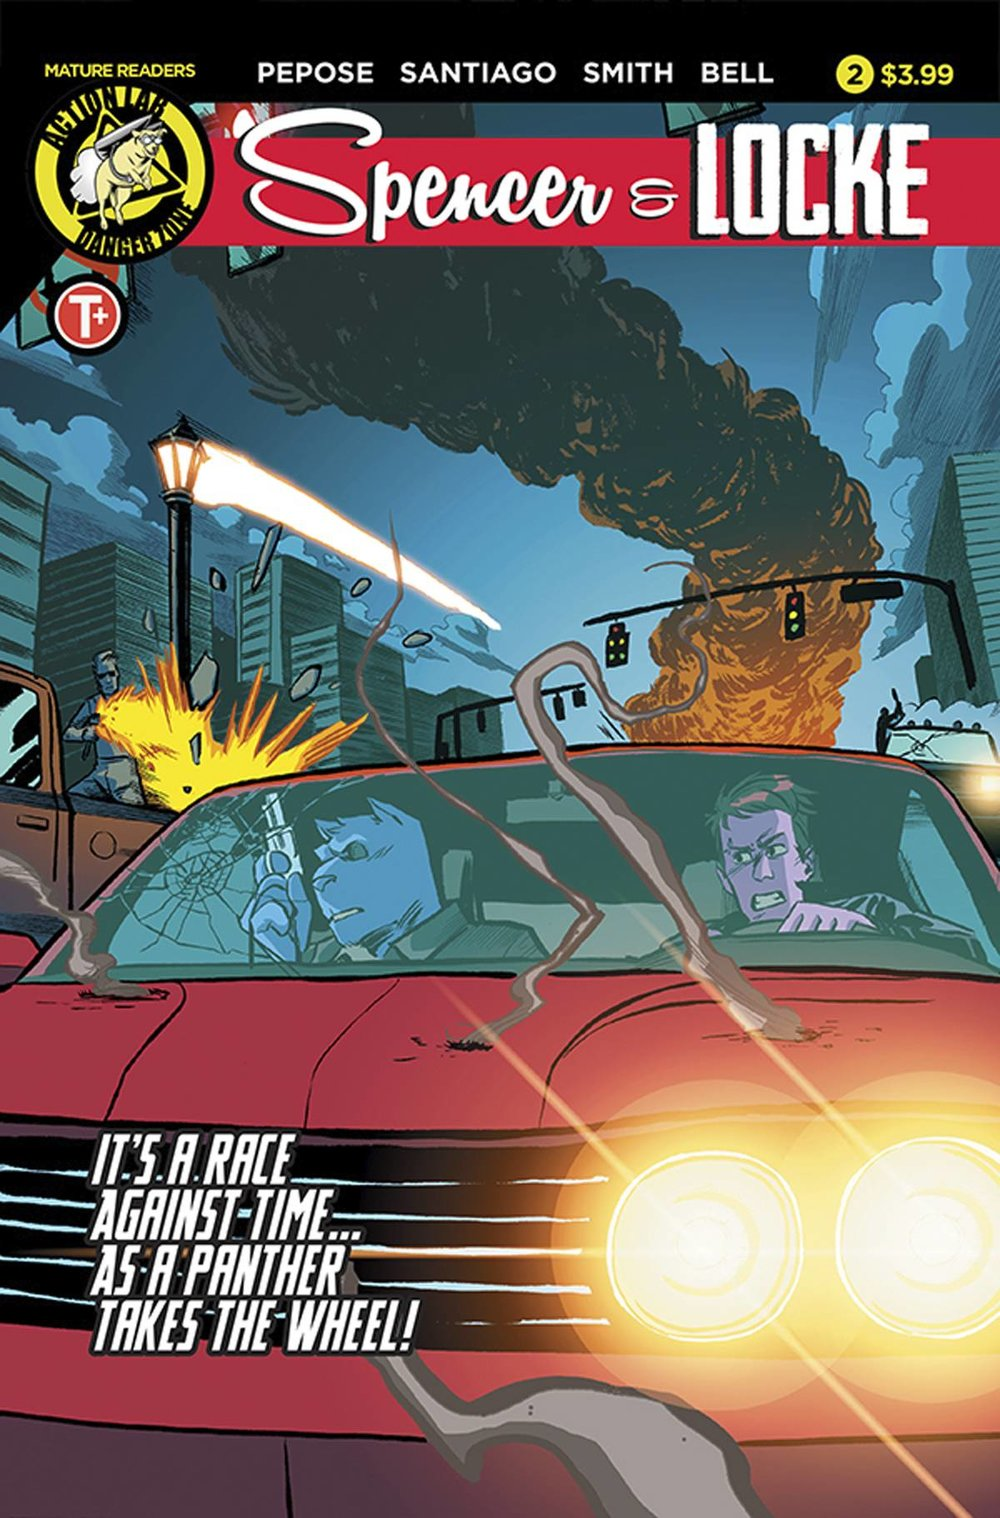 SPENCER AND LOCKE 2 of 4 CVR A SANTIAGO JR.jpg